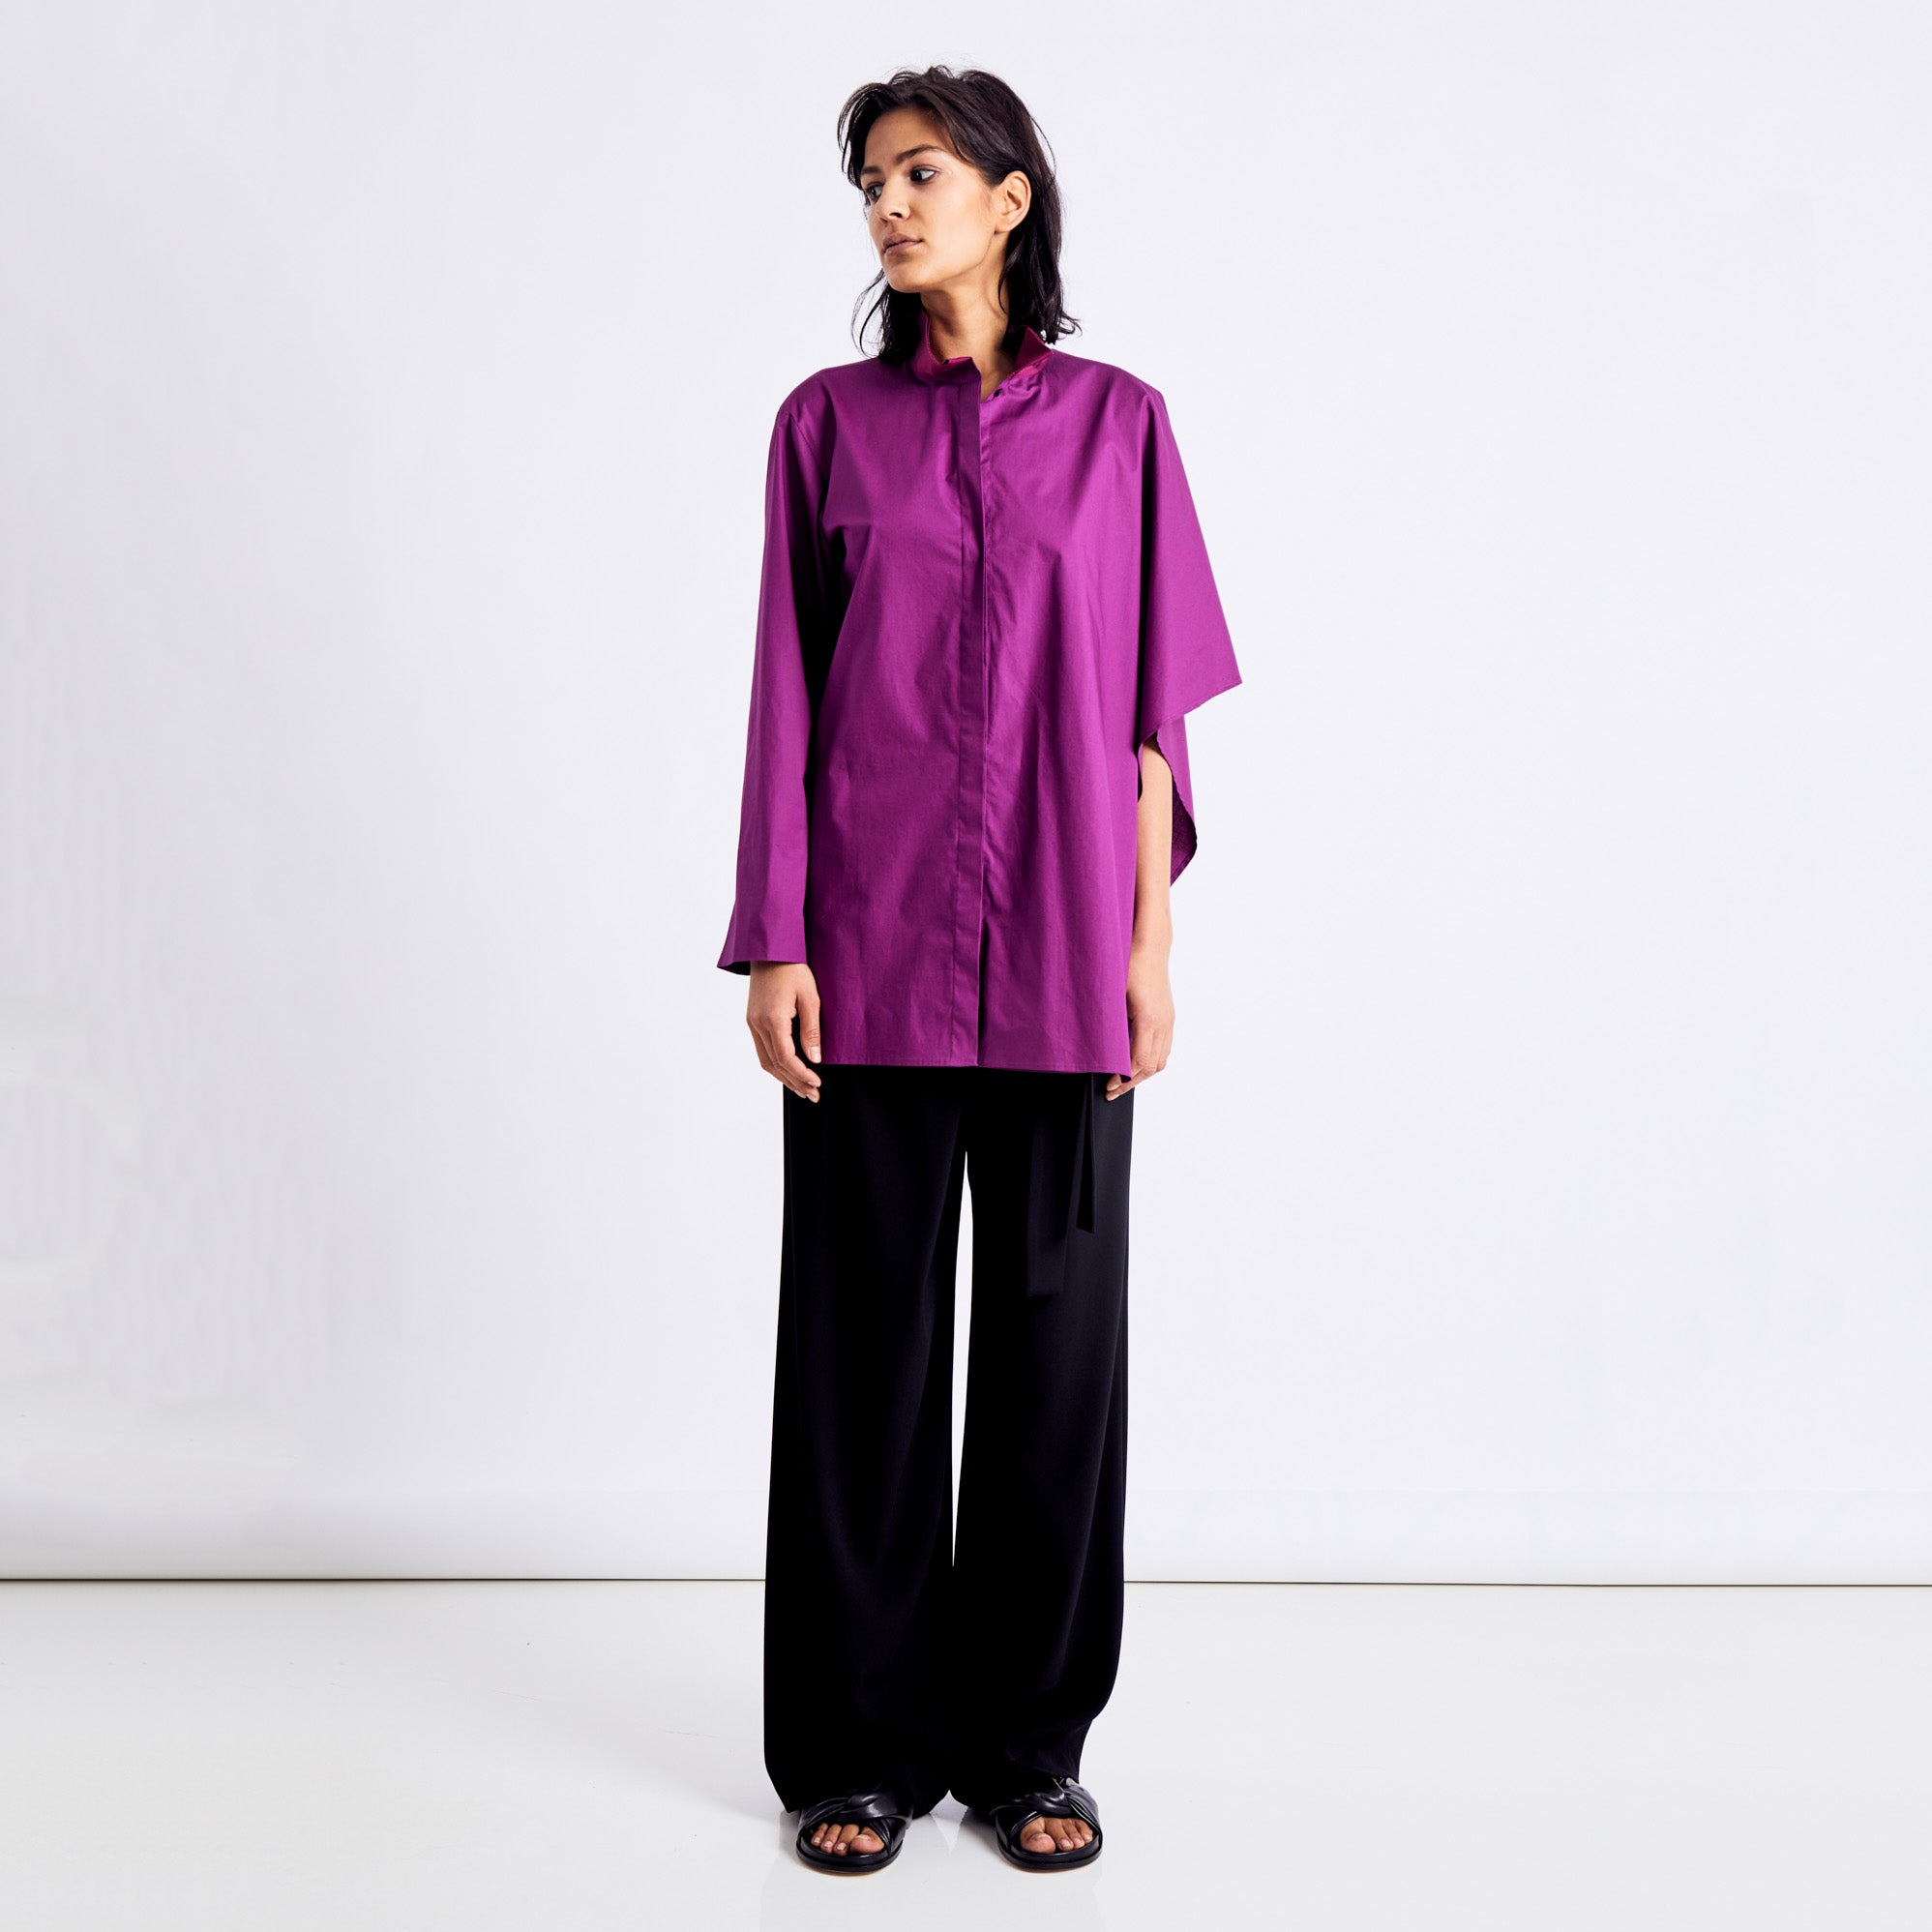 WINGATE Collection Styleguide BASIR PICO Front